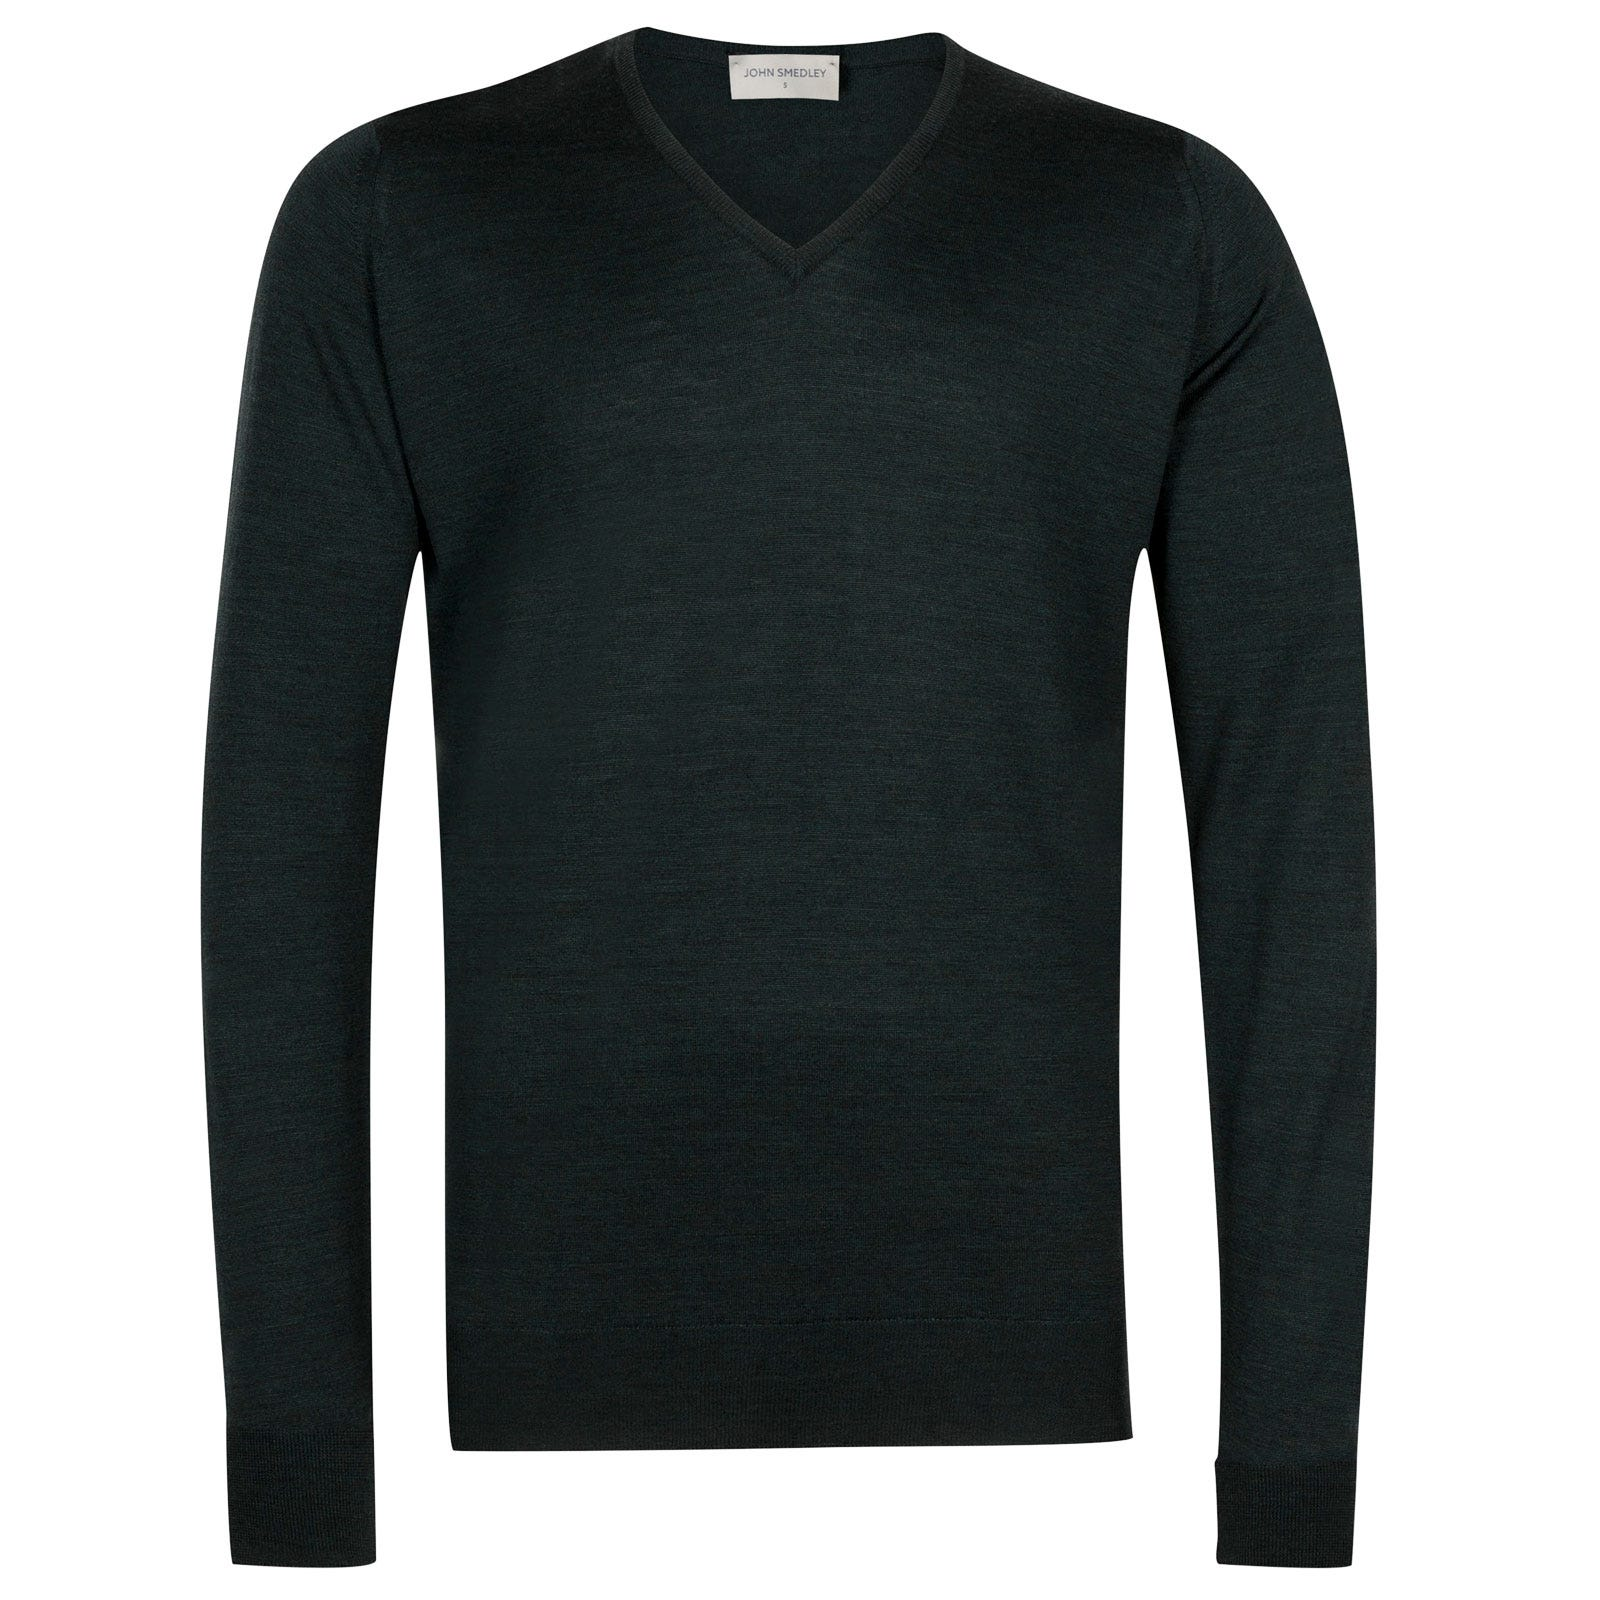 John Smedley Bobby Merino Wool Pullover in Racing Green-M